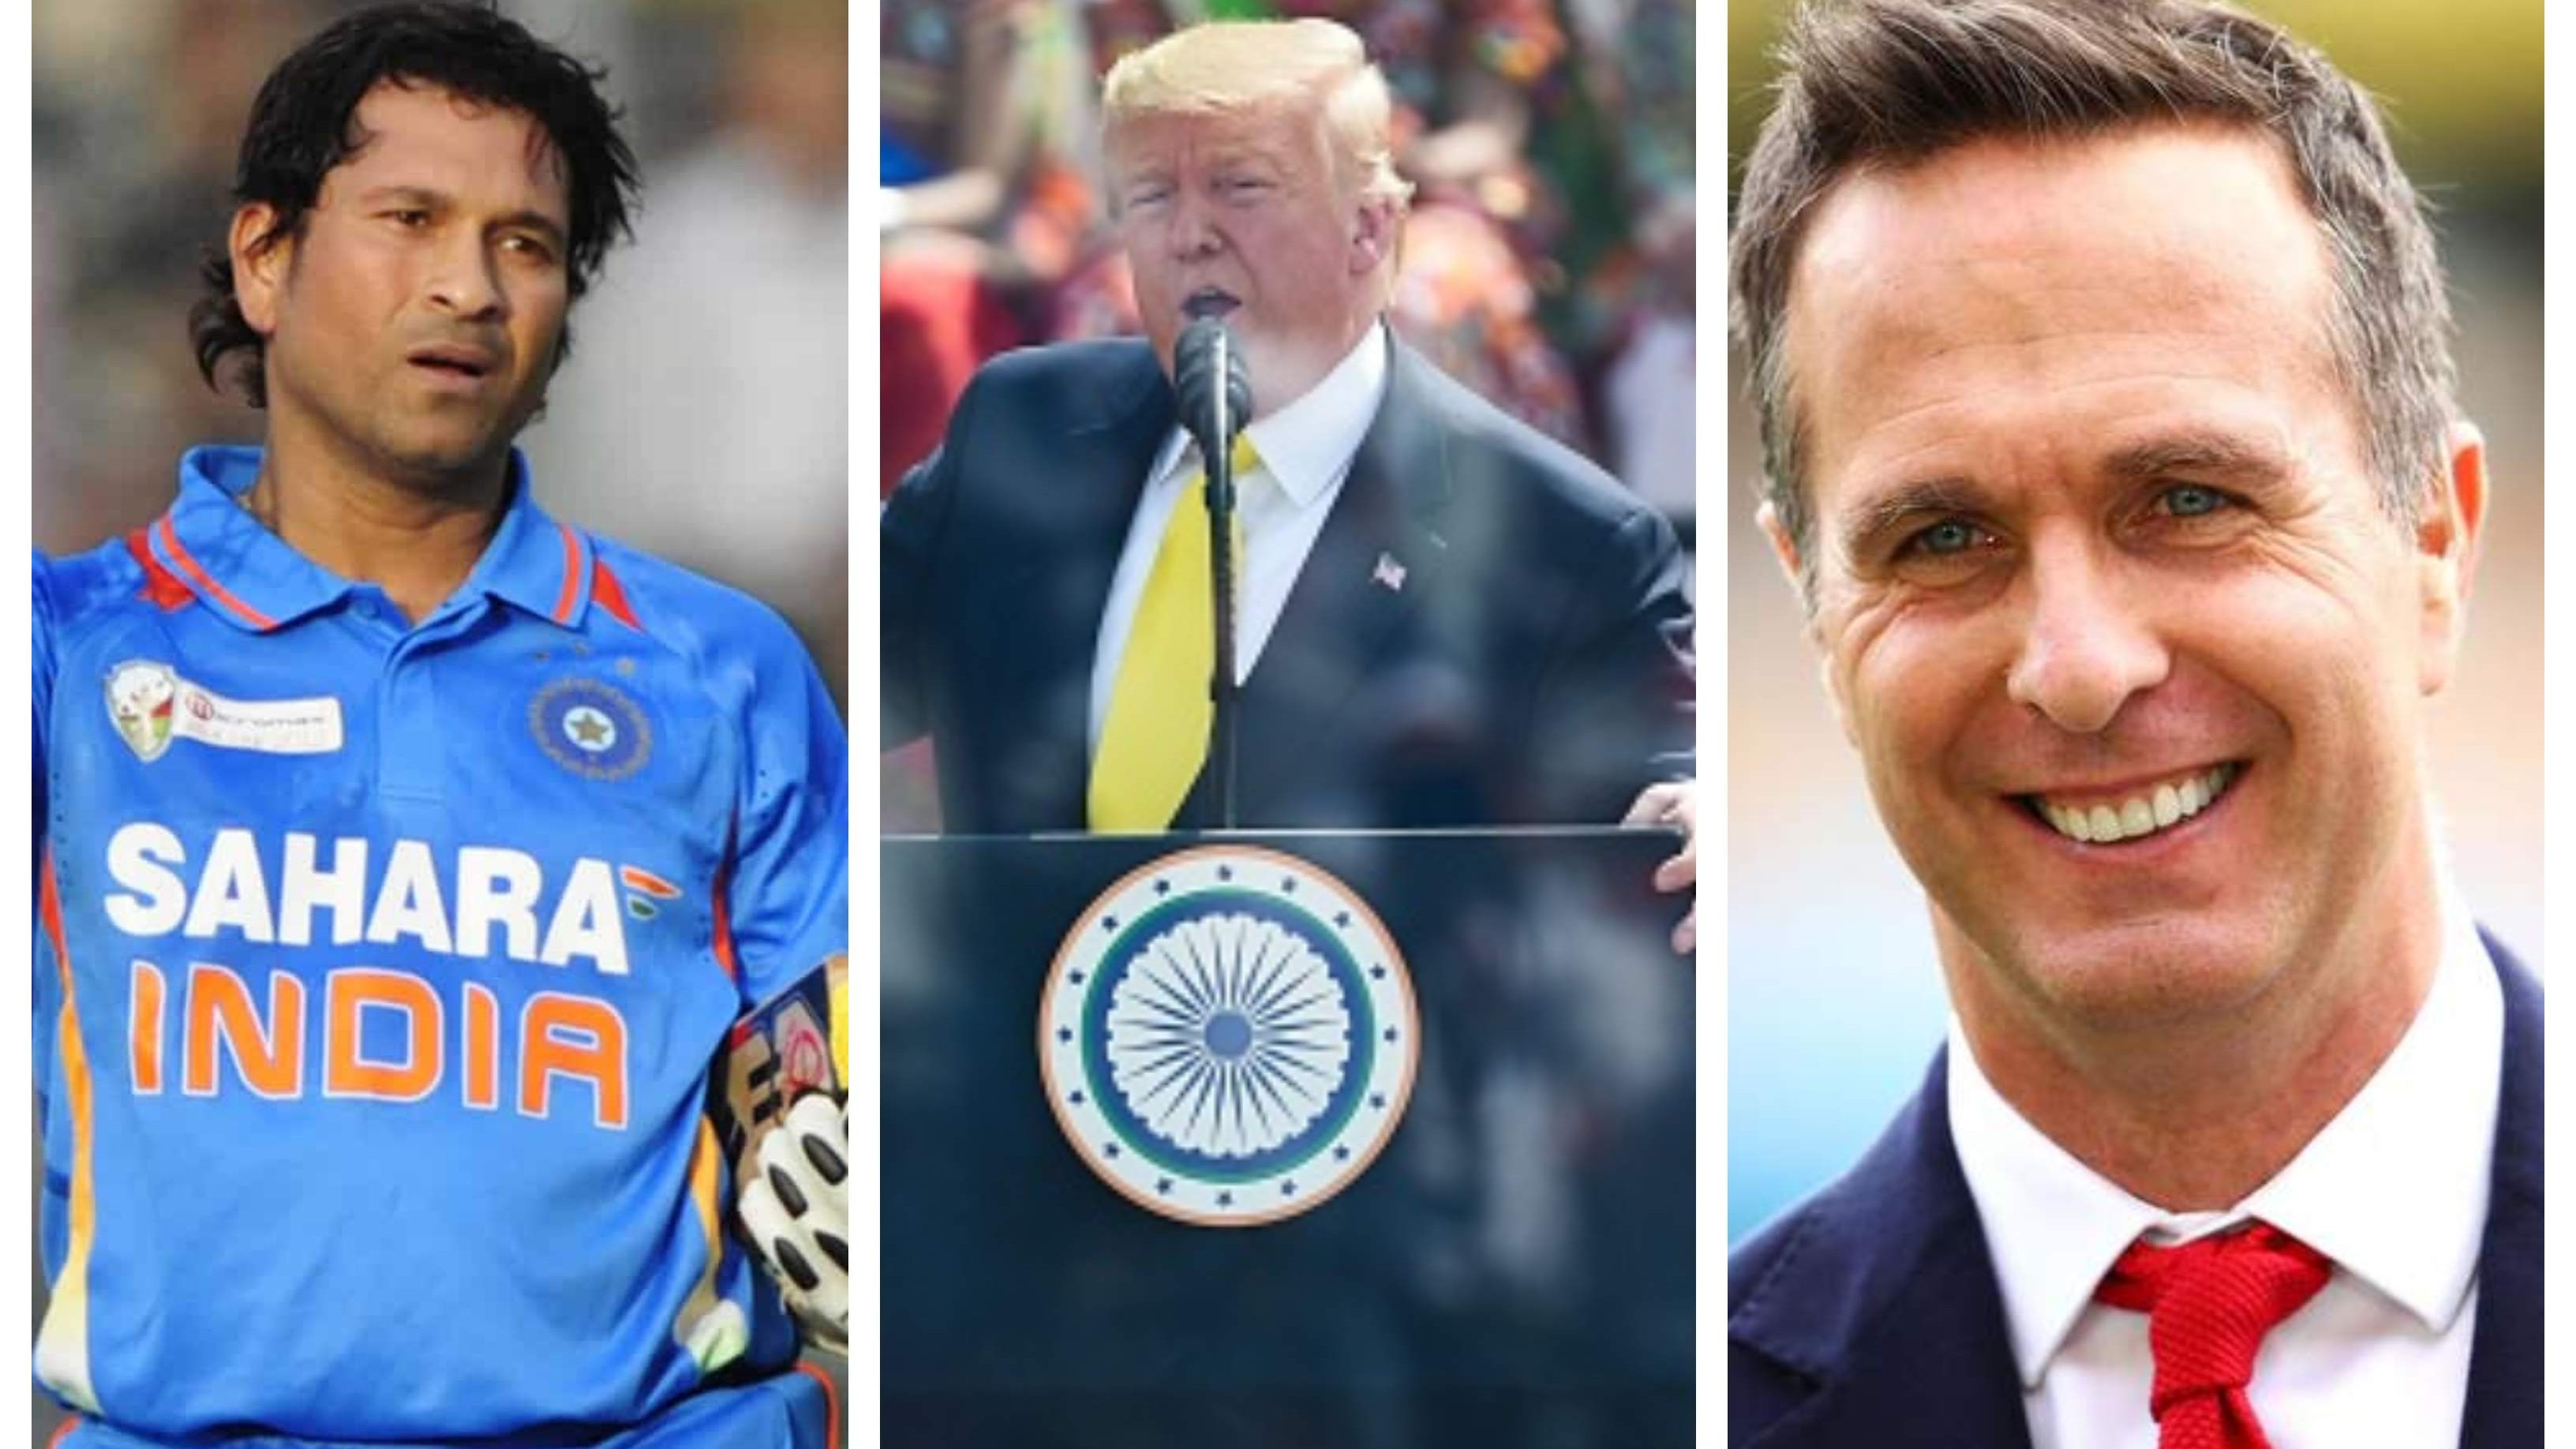 'How are you today Sue Chin?' – Vaughan asks Tendulkar after US President mispronounces his name